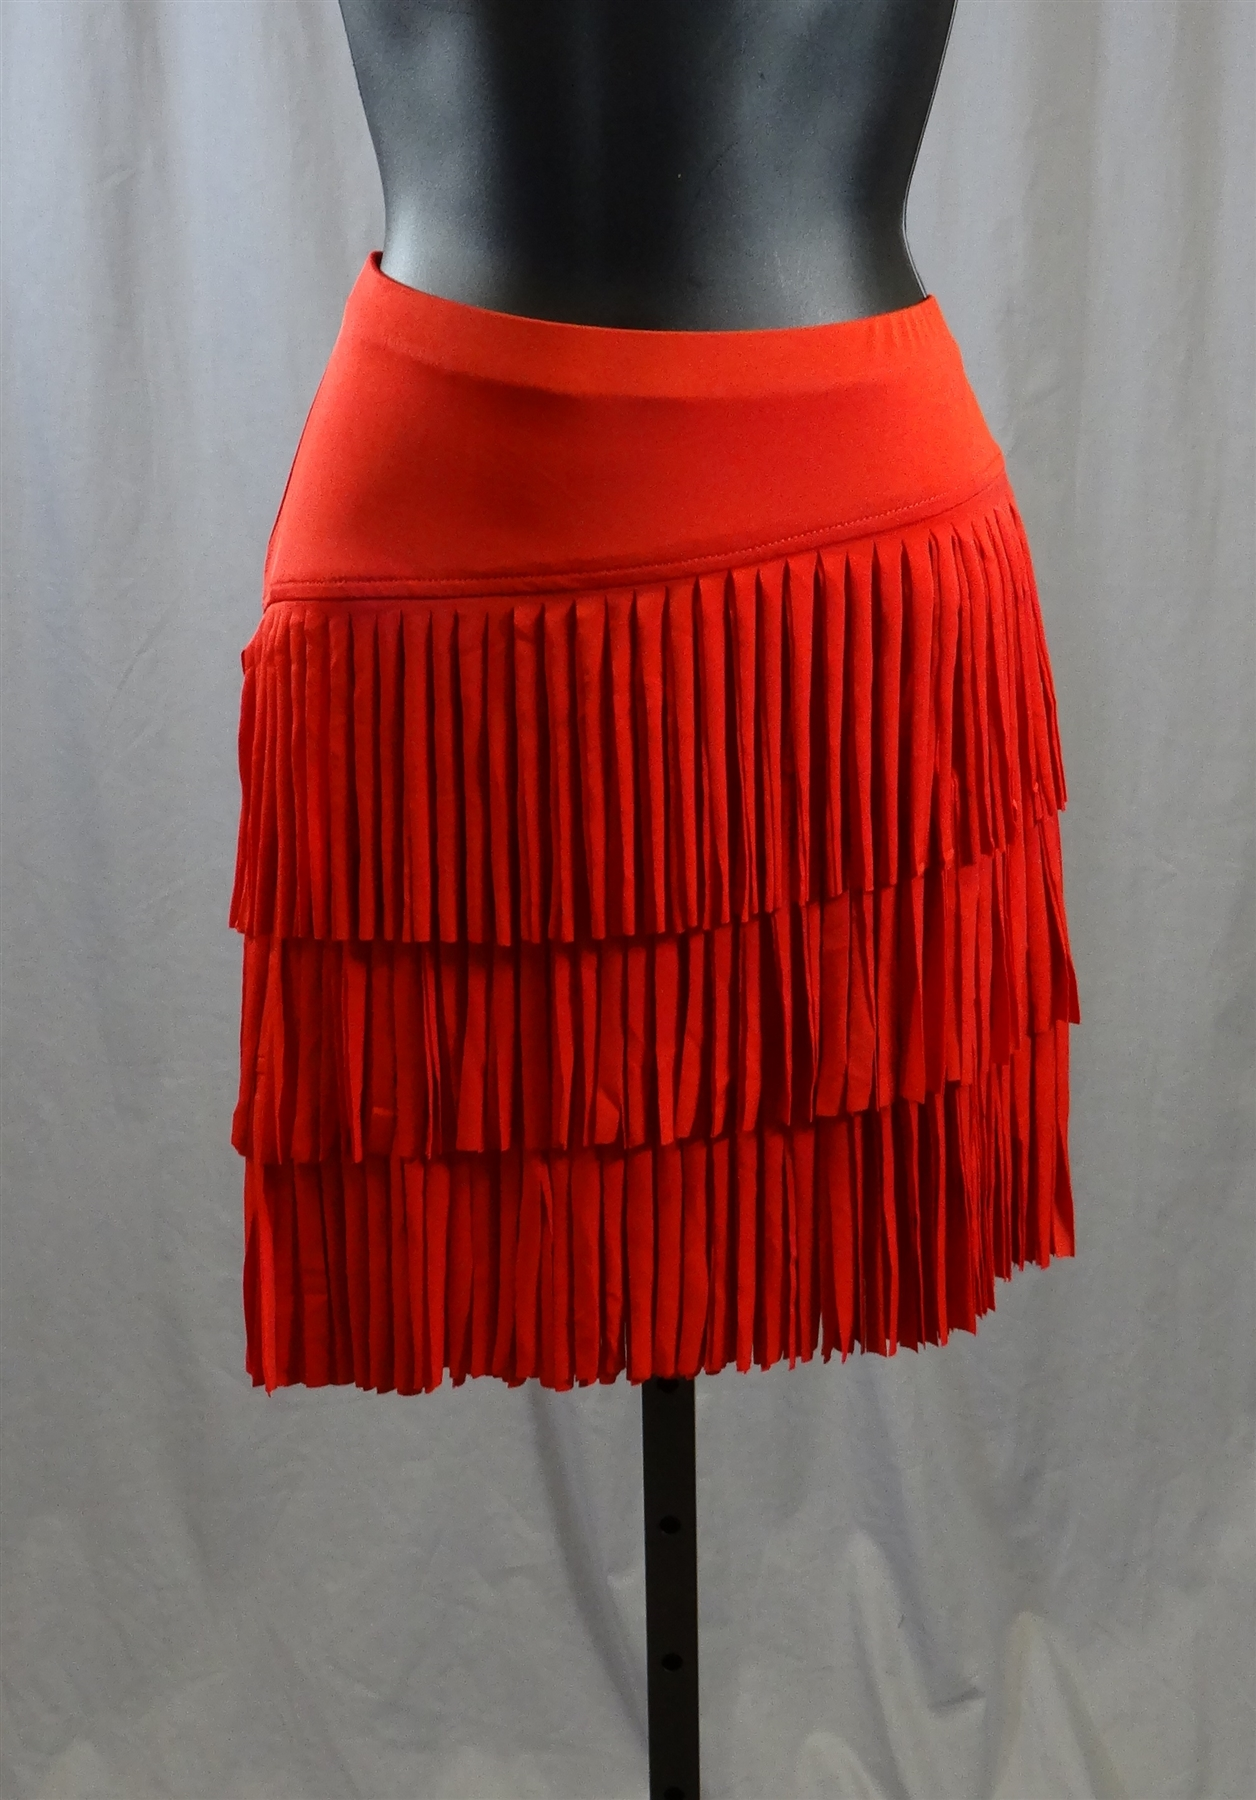 Cloth Fringe Latin Skirt with Builtin Under Pants